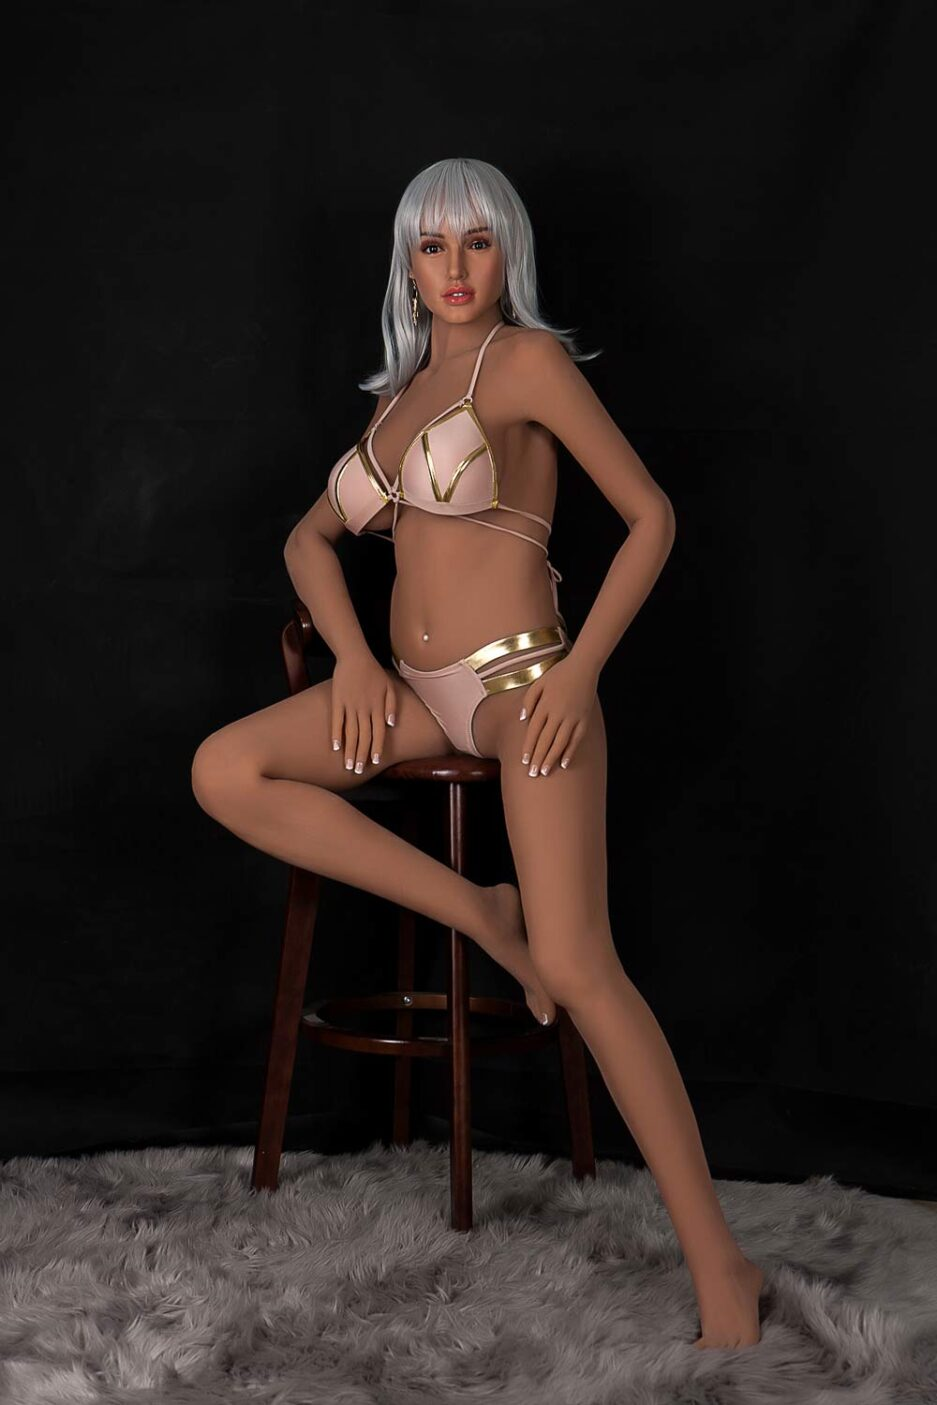 Silicone sex doll sitting in a chair